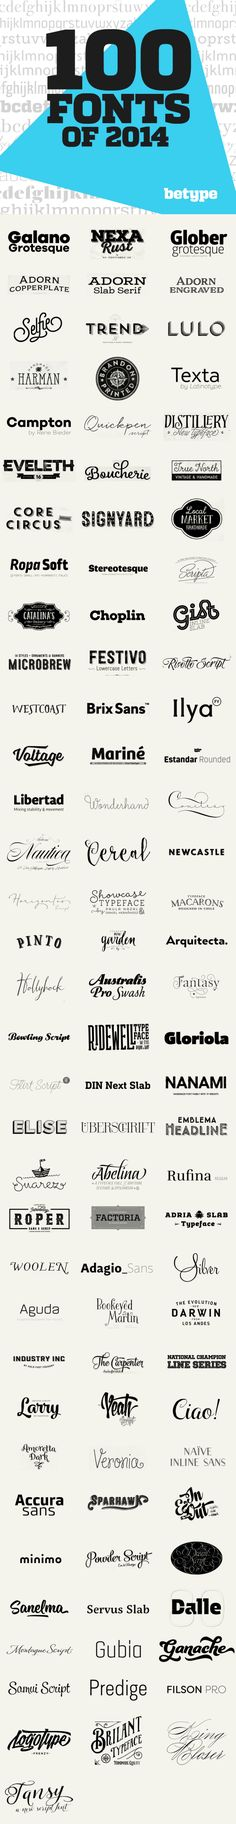 100 Best Fonts of 2014. Links at the bottom of the website